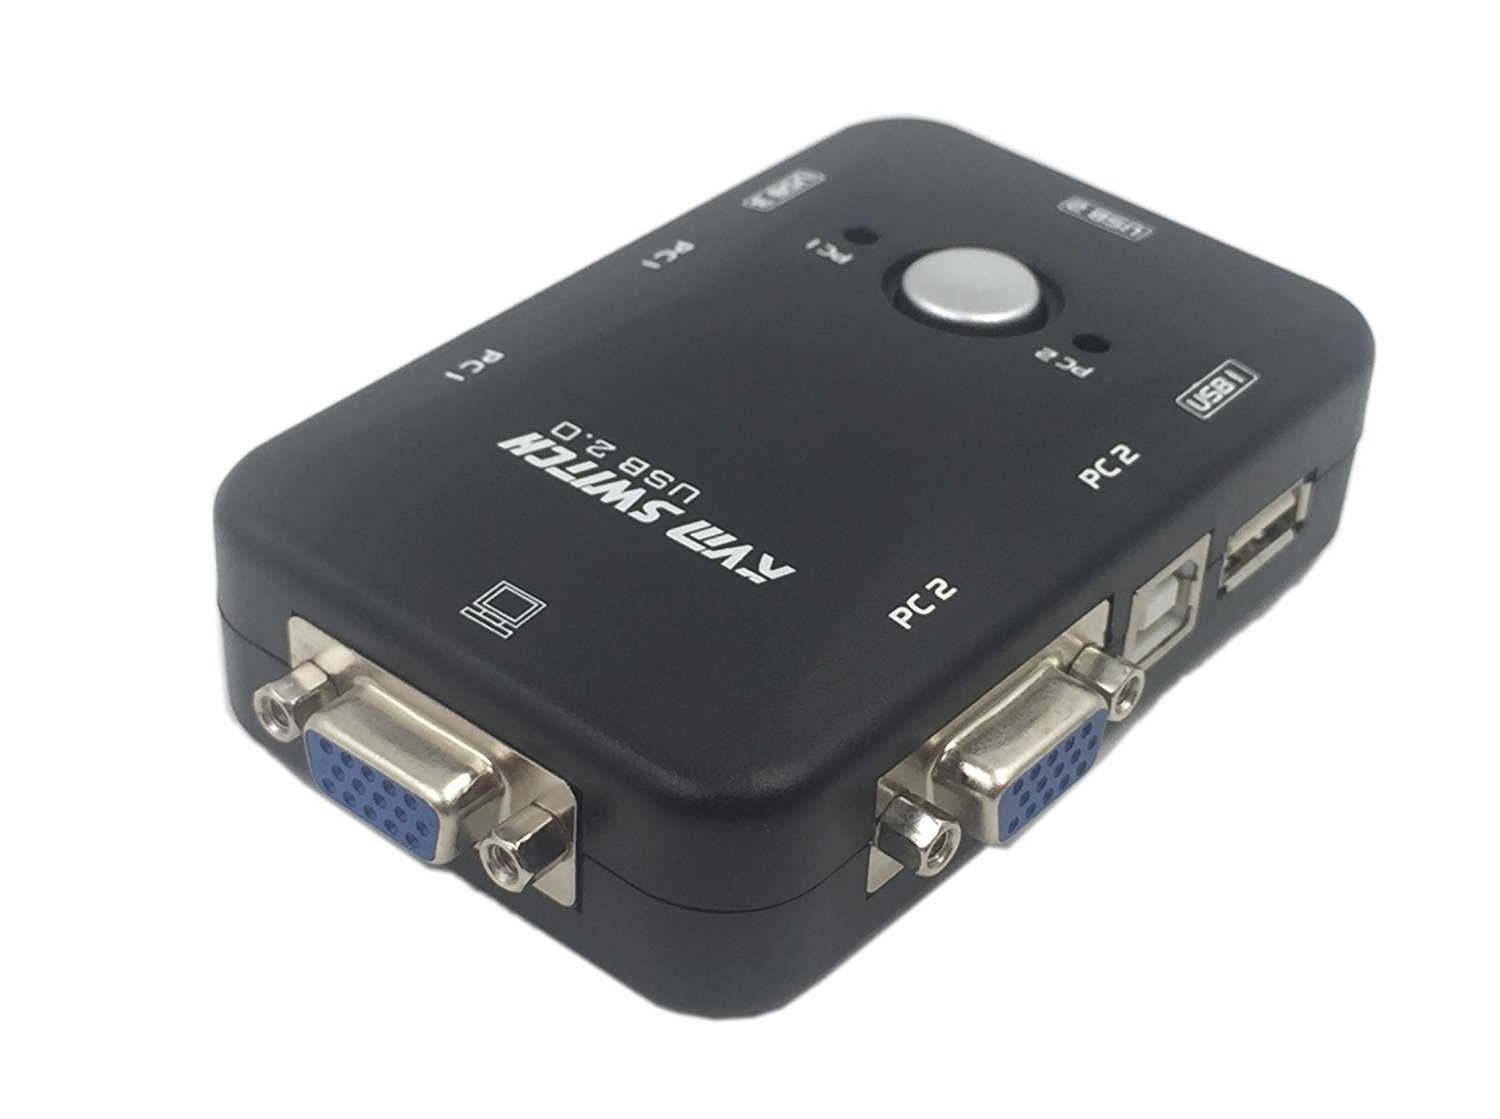 CERRXIAN All-in-one Mini 2 Port USB 2.0 KVM Manual Switch Box for PC Sharing Monitor Video Mouse Keyboard Control